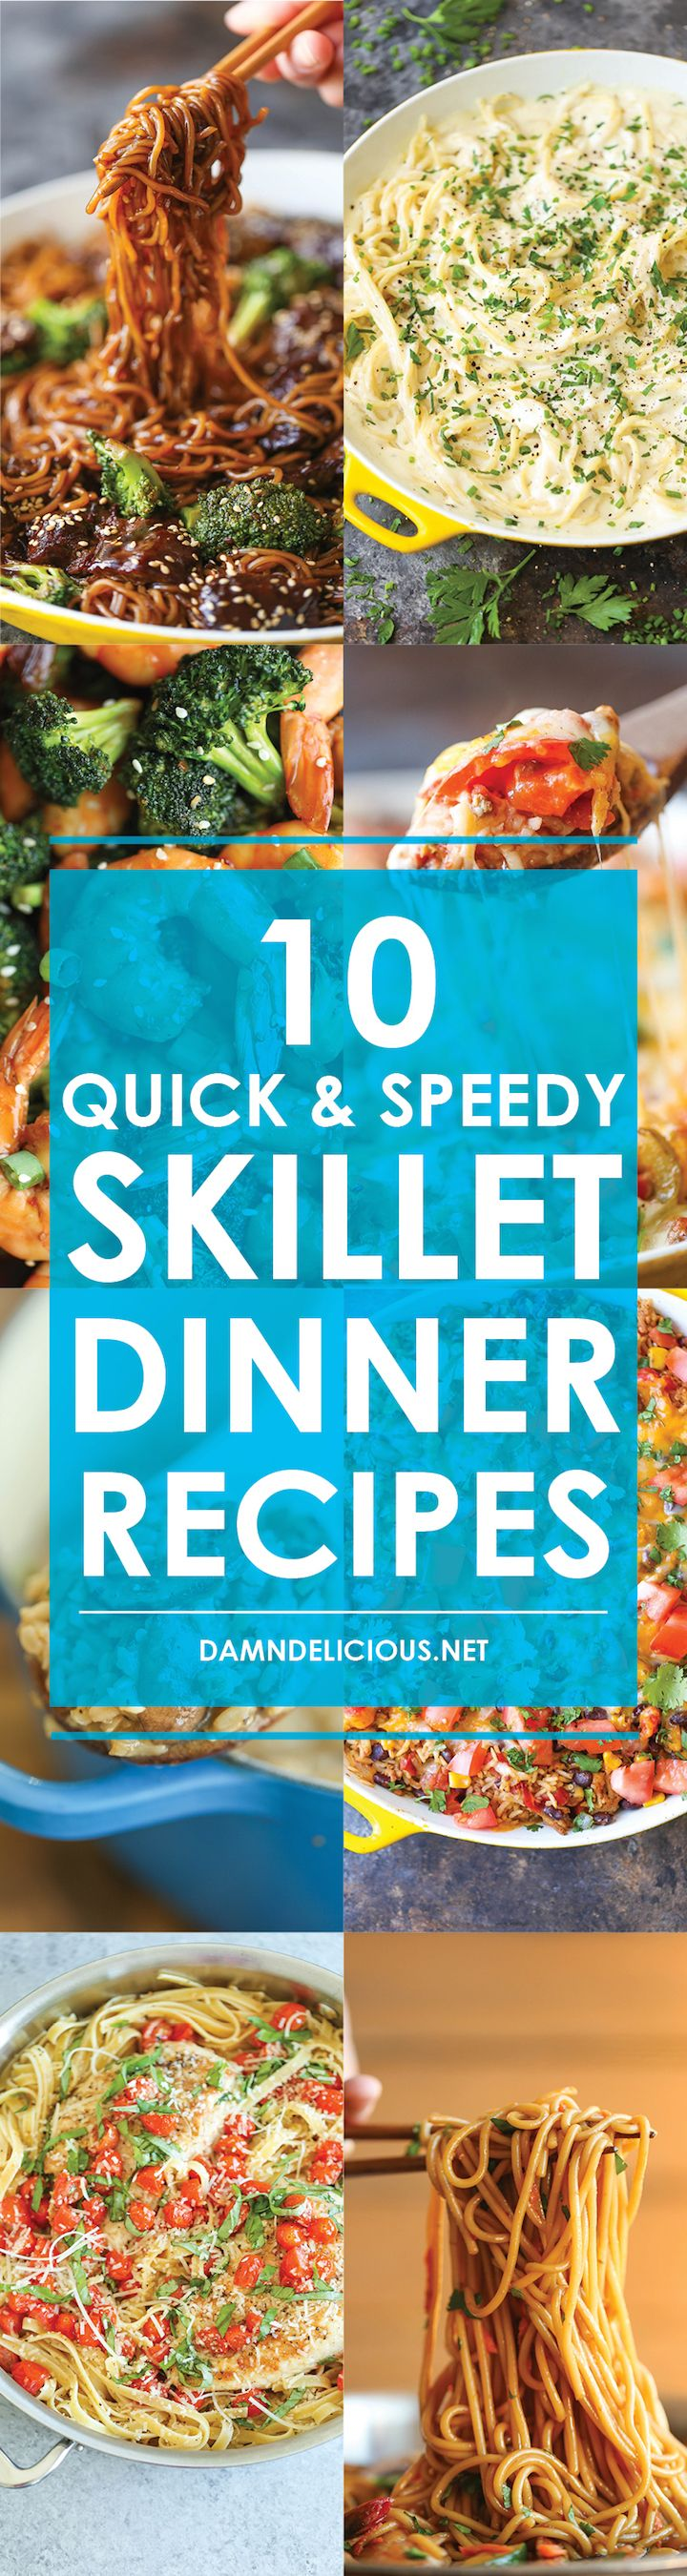 10 Quick and Speedy Skillet Dinners - Easy peasy 30-minute dinners made in a flash for those busy weeknights. Best of all, there's minimal clean up here!